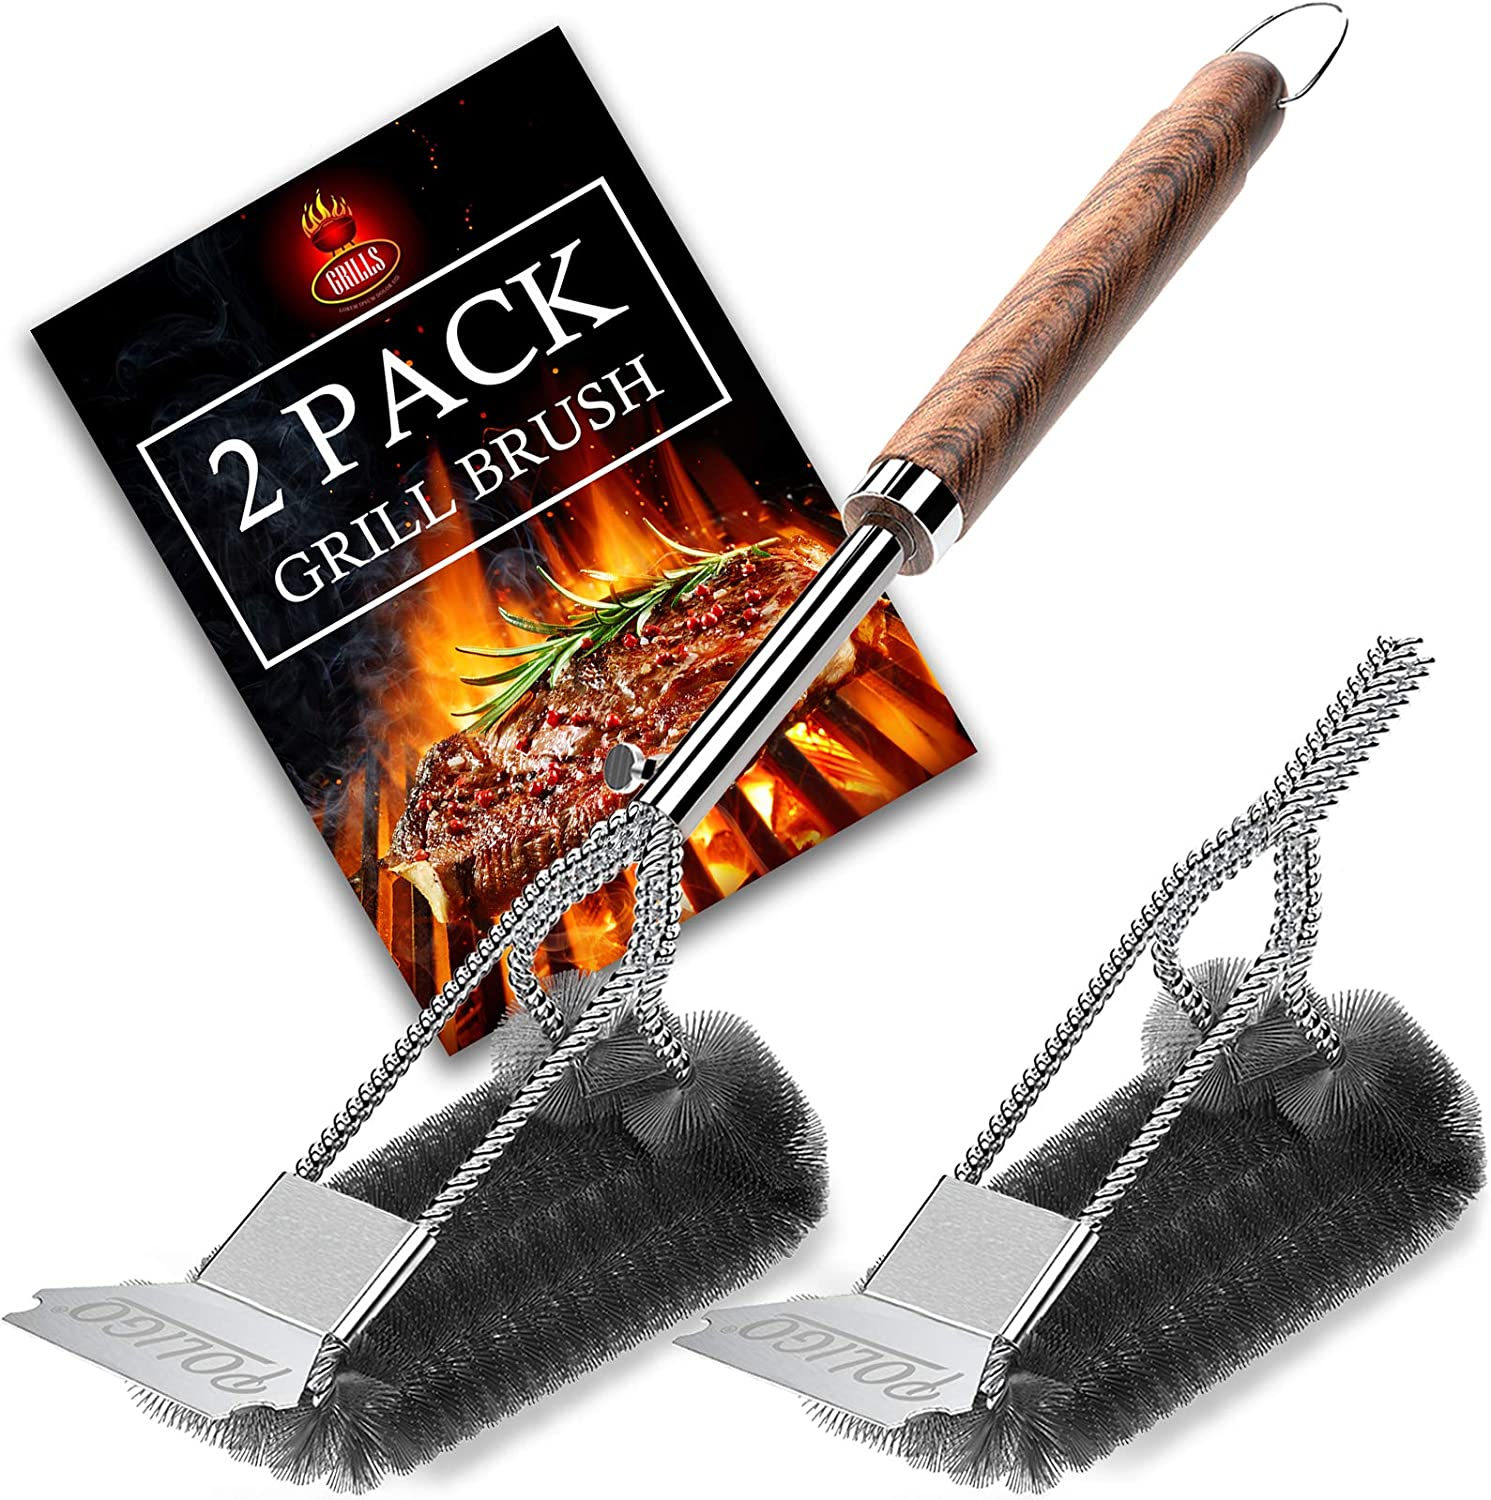 POLIGO 2 Pack Safe BBQ Grill Brush and Scraper, Heavy Duty Stainless Steel Grill Cleaning Kit with Extra Brush Head, Woven Wire Bristle Grilling Cleaner Accessories for Gas, Charcoal, Grill Grates: Kitchen & Dining